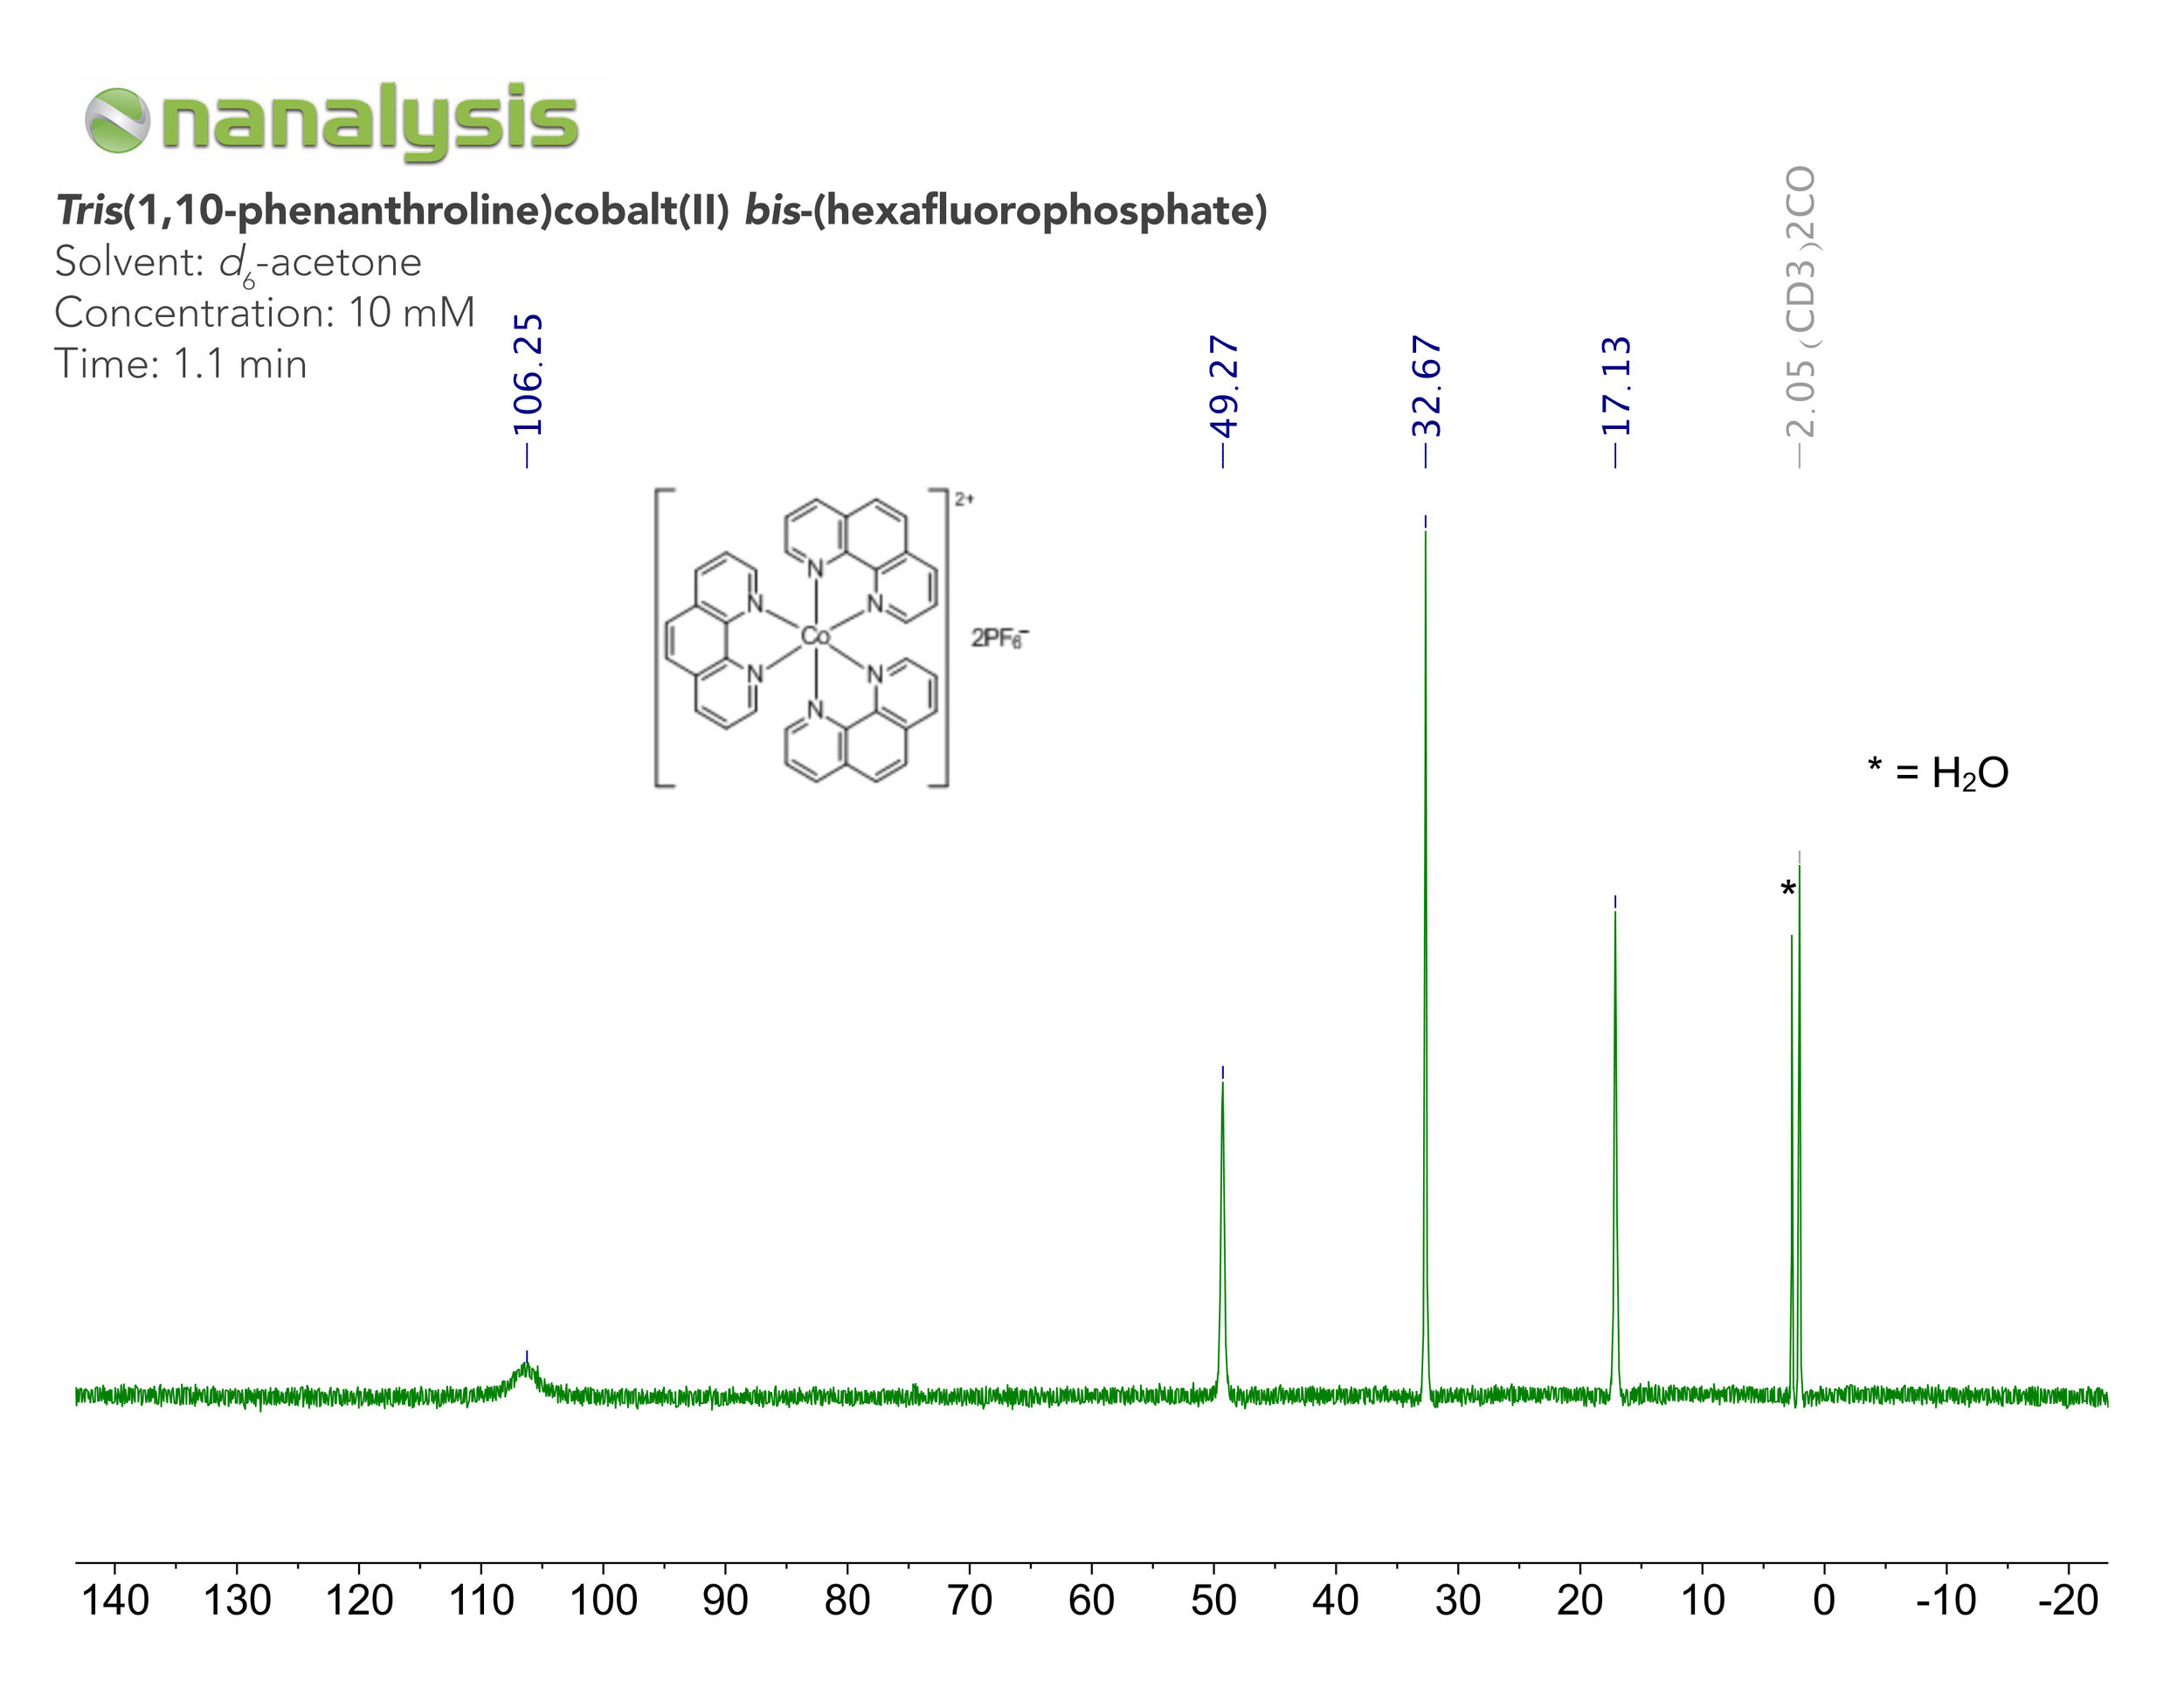 paramagnetic-nmr-benchtop-Co(phen)3.jpg